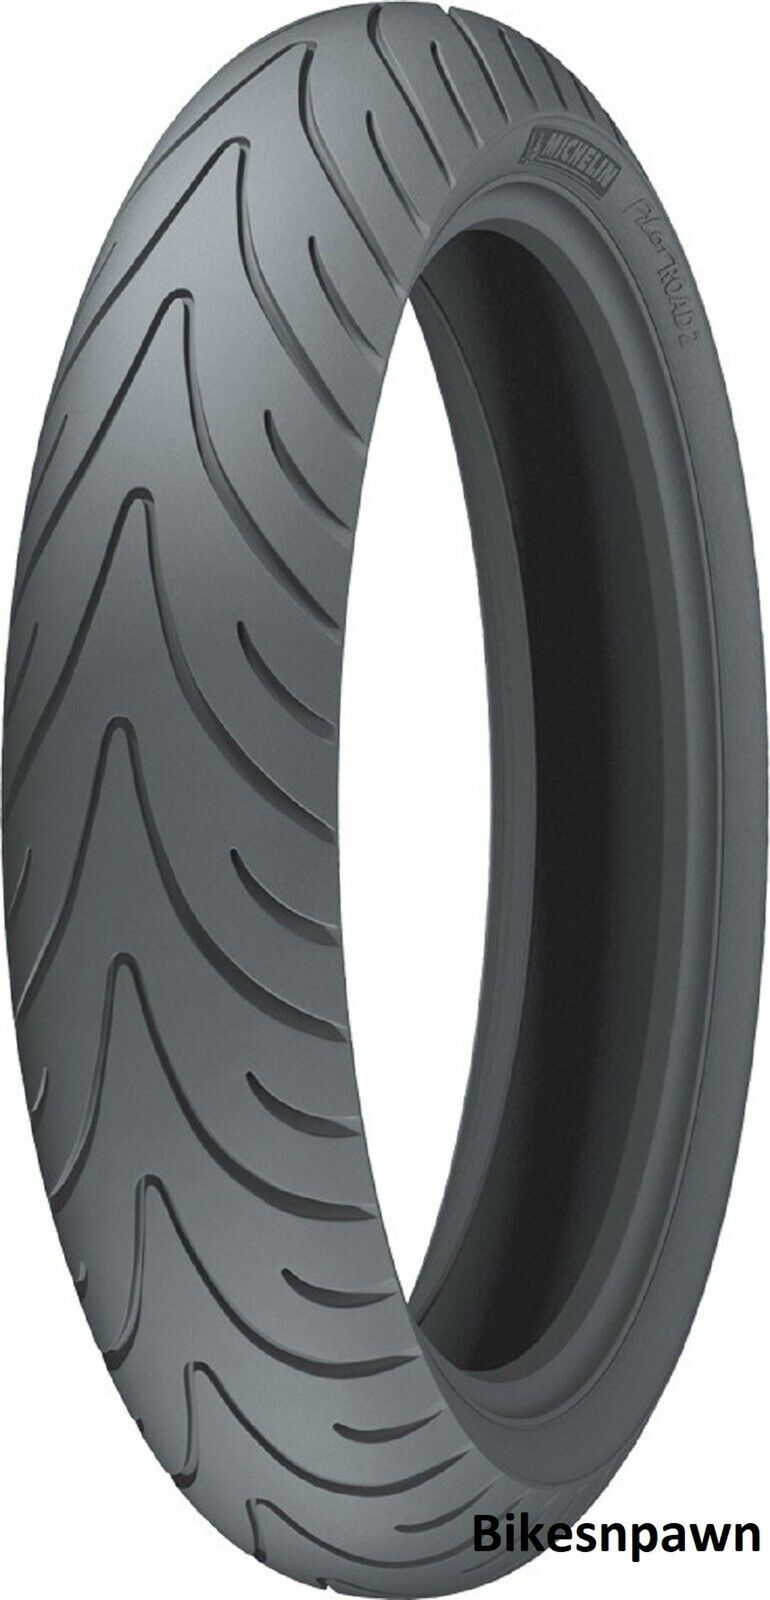 New Michelin Pilot Road 2 120/70ZR17 Front TL Radial Motorcycle Tire 58W 95564